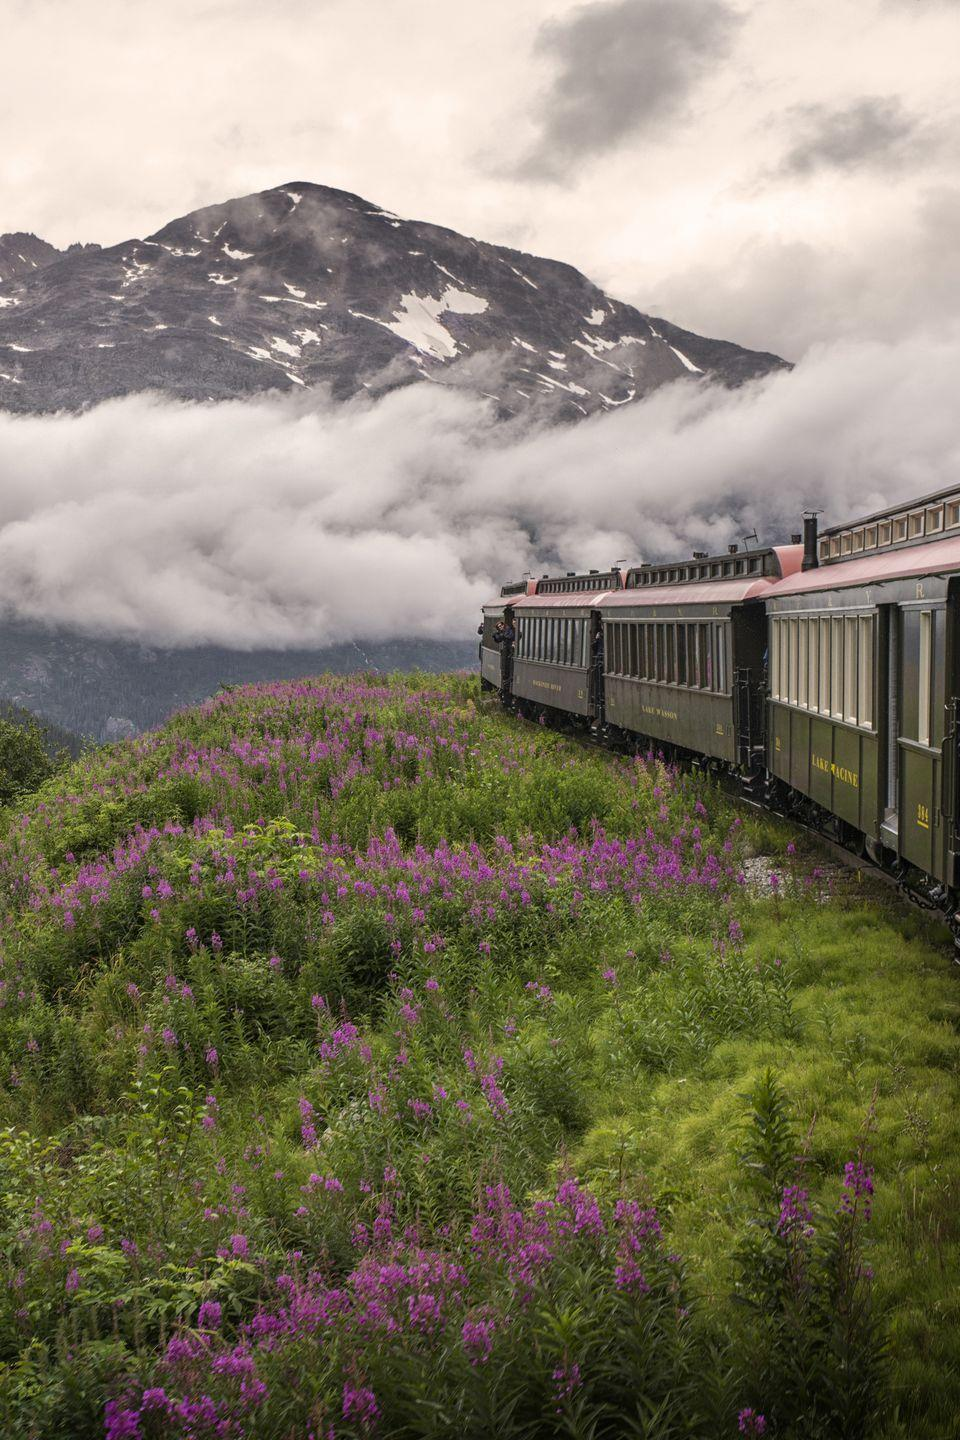 """<p><strong>Where:</strong> White Pass and Yukon Route Railroad, Alaska</p><p><strong>Why We Love It: </strong>Built in the late 19th century during the Klondike Gold Rush, this scenic railroad climbs nearly 3,000 feet in 20 miles giving riders panoramic (and cliff-hanging!) views of the surrounding mountains.<br></p><p><strong>RELATED:</strong> <a href=""""https://www.countryliving.com/life/travel/g2312/scenic-train-rides-across-america/"""" rel=""""nofollow noopener"""" target=""""_blank"""" data-ylk=""""slk:The Most Scenic Train Rides In North America"""" class=""""link rapid-noclick-resp"""">The Most Scenic Train Rides In North America</a><br></p>"""